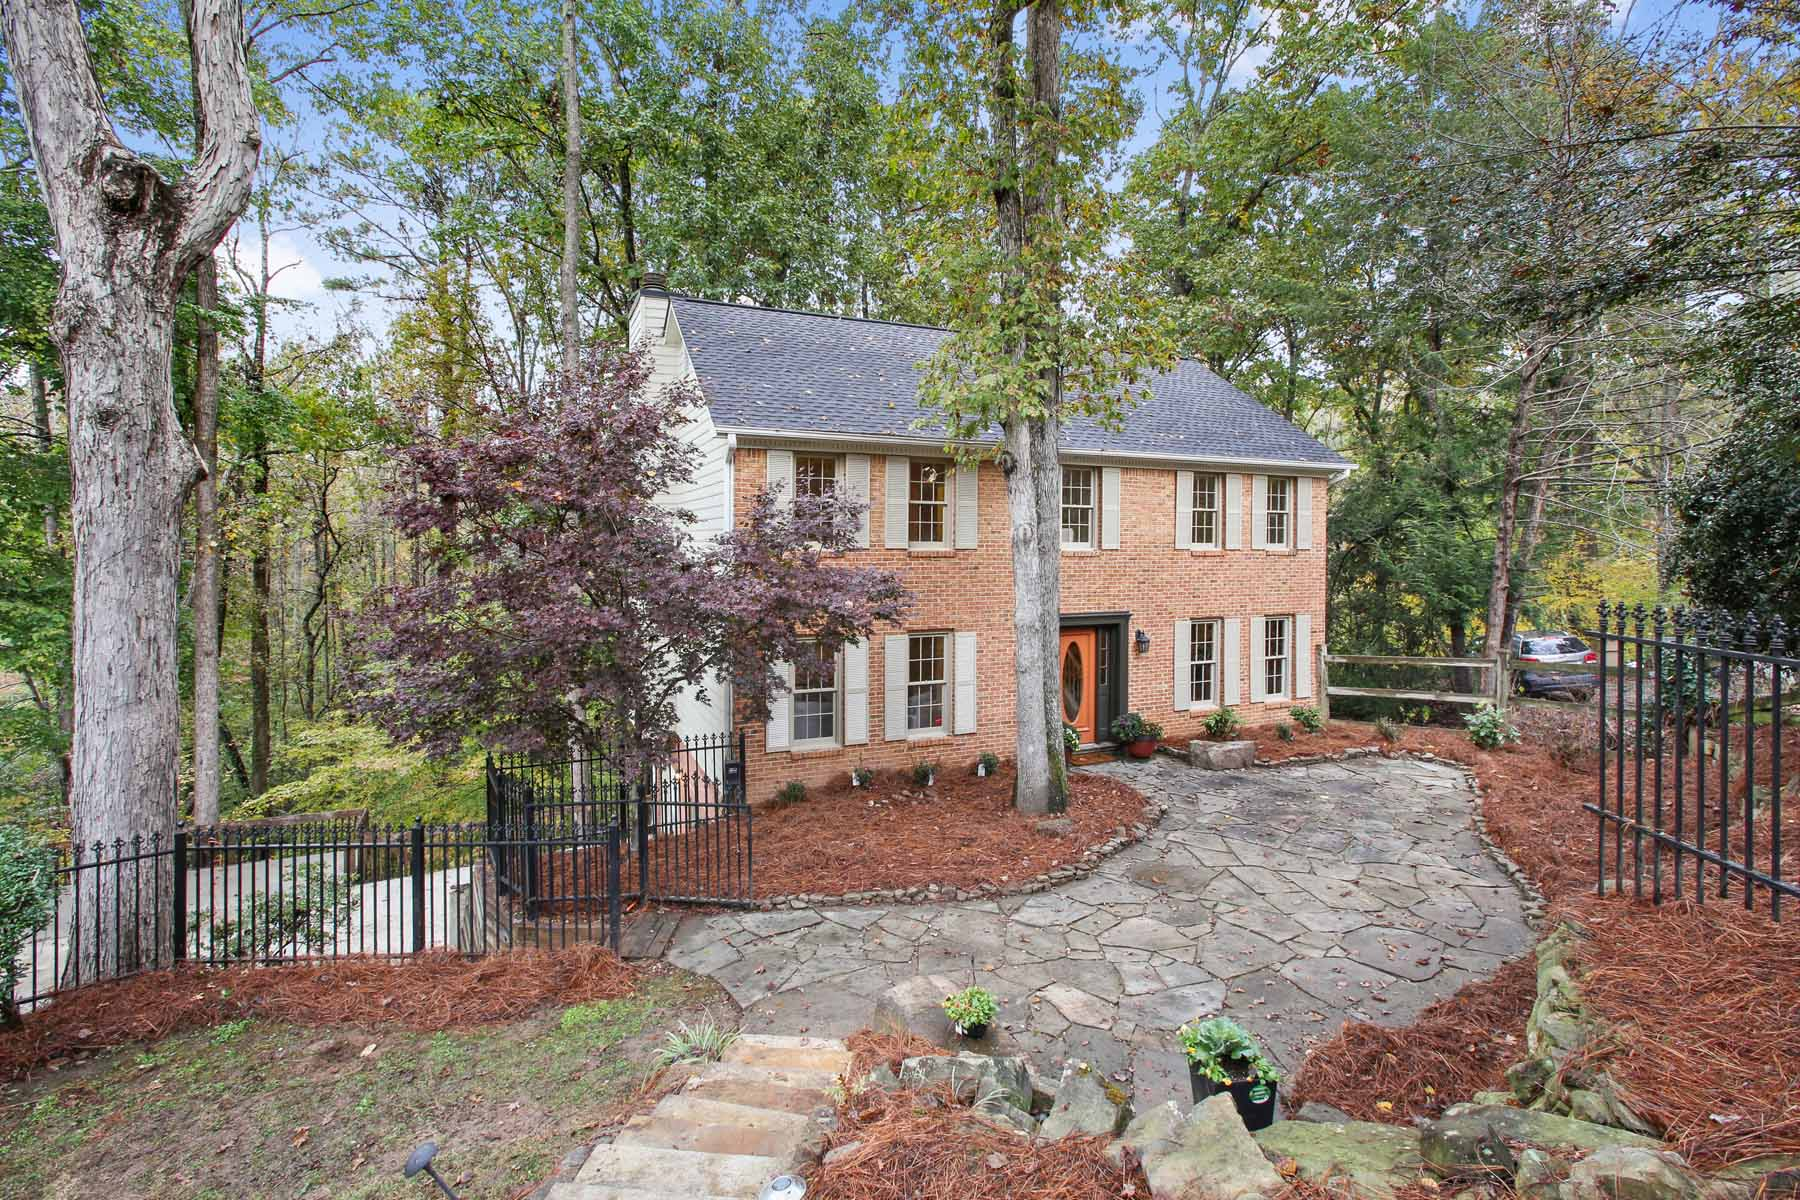 Single Family Home for Sale at Gorgeous Renovated Brick Traditional nestled On A Prime Cul-de-sac Lot! 3879 Wintergreen Ct Marietta, Georgia 30062 United States